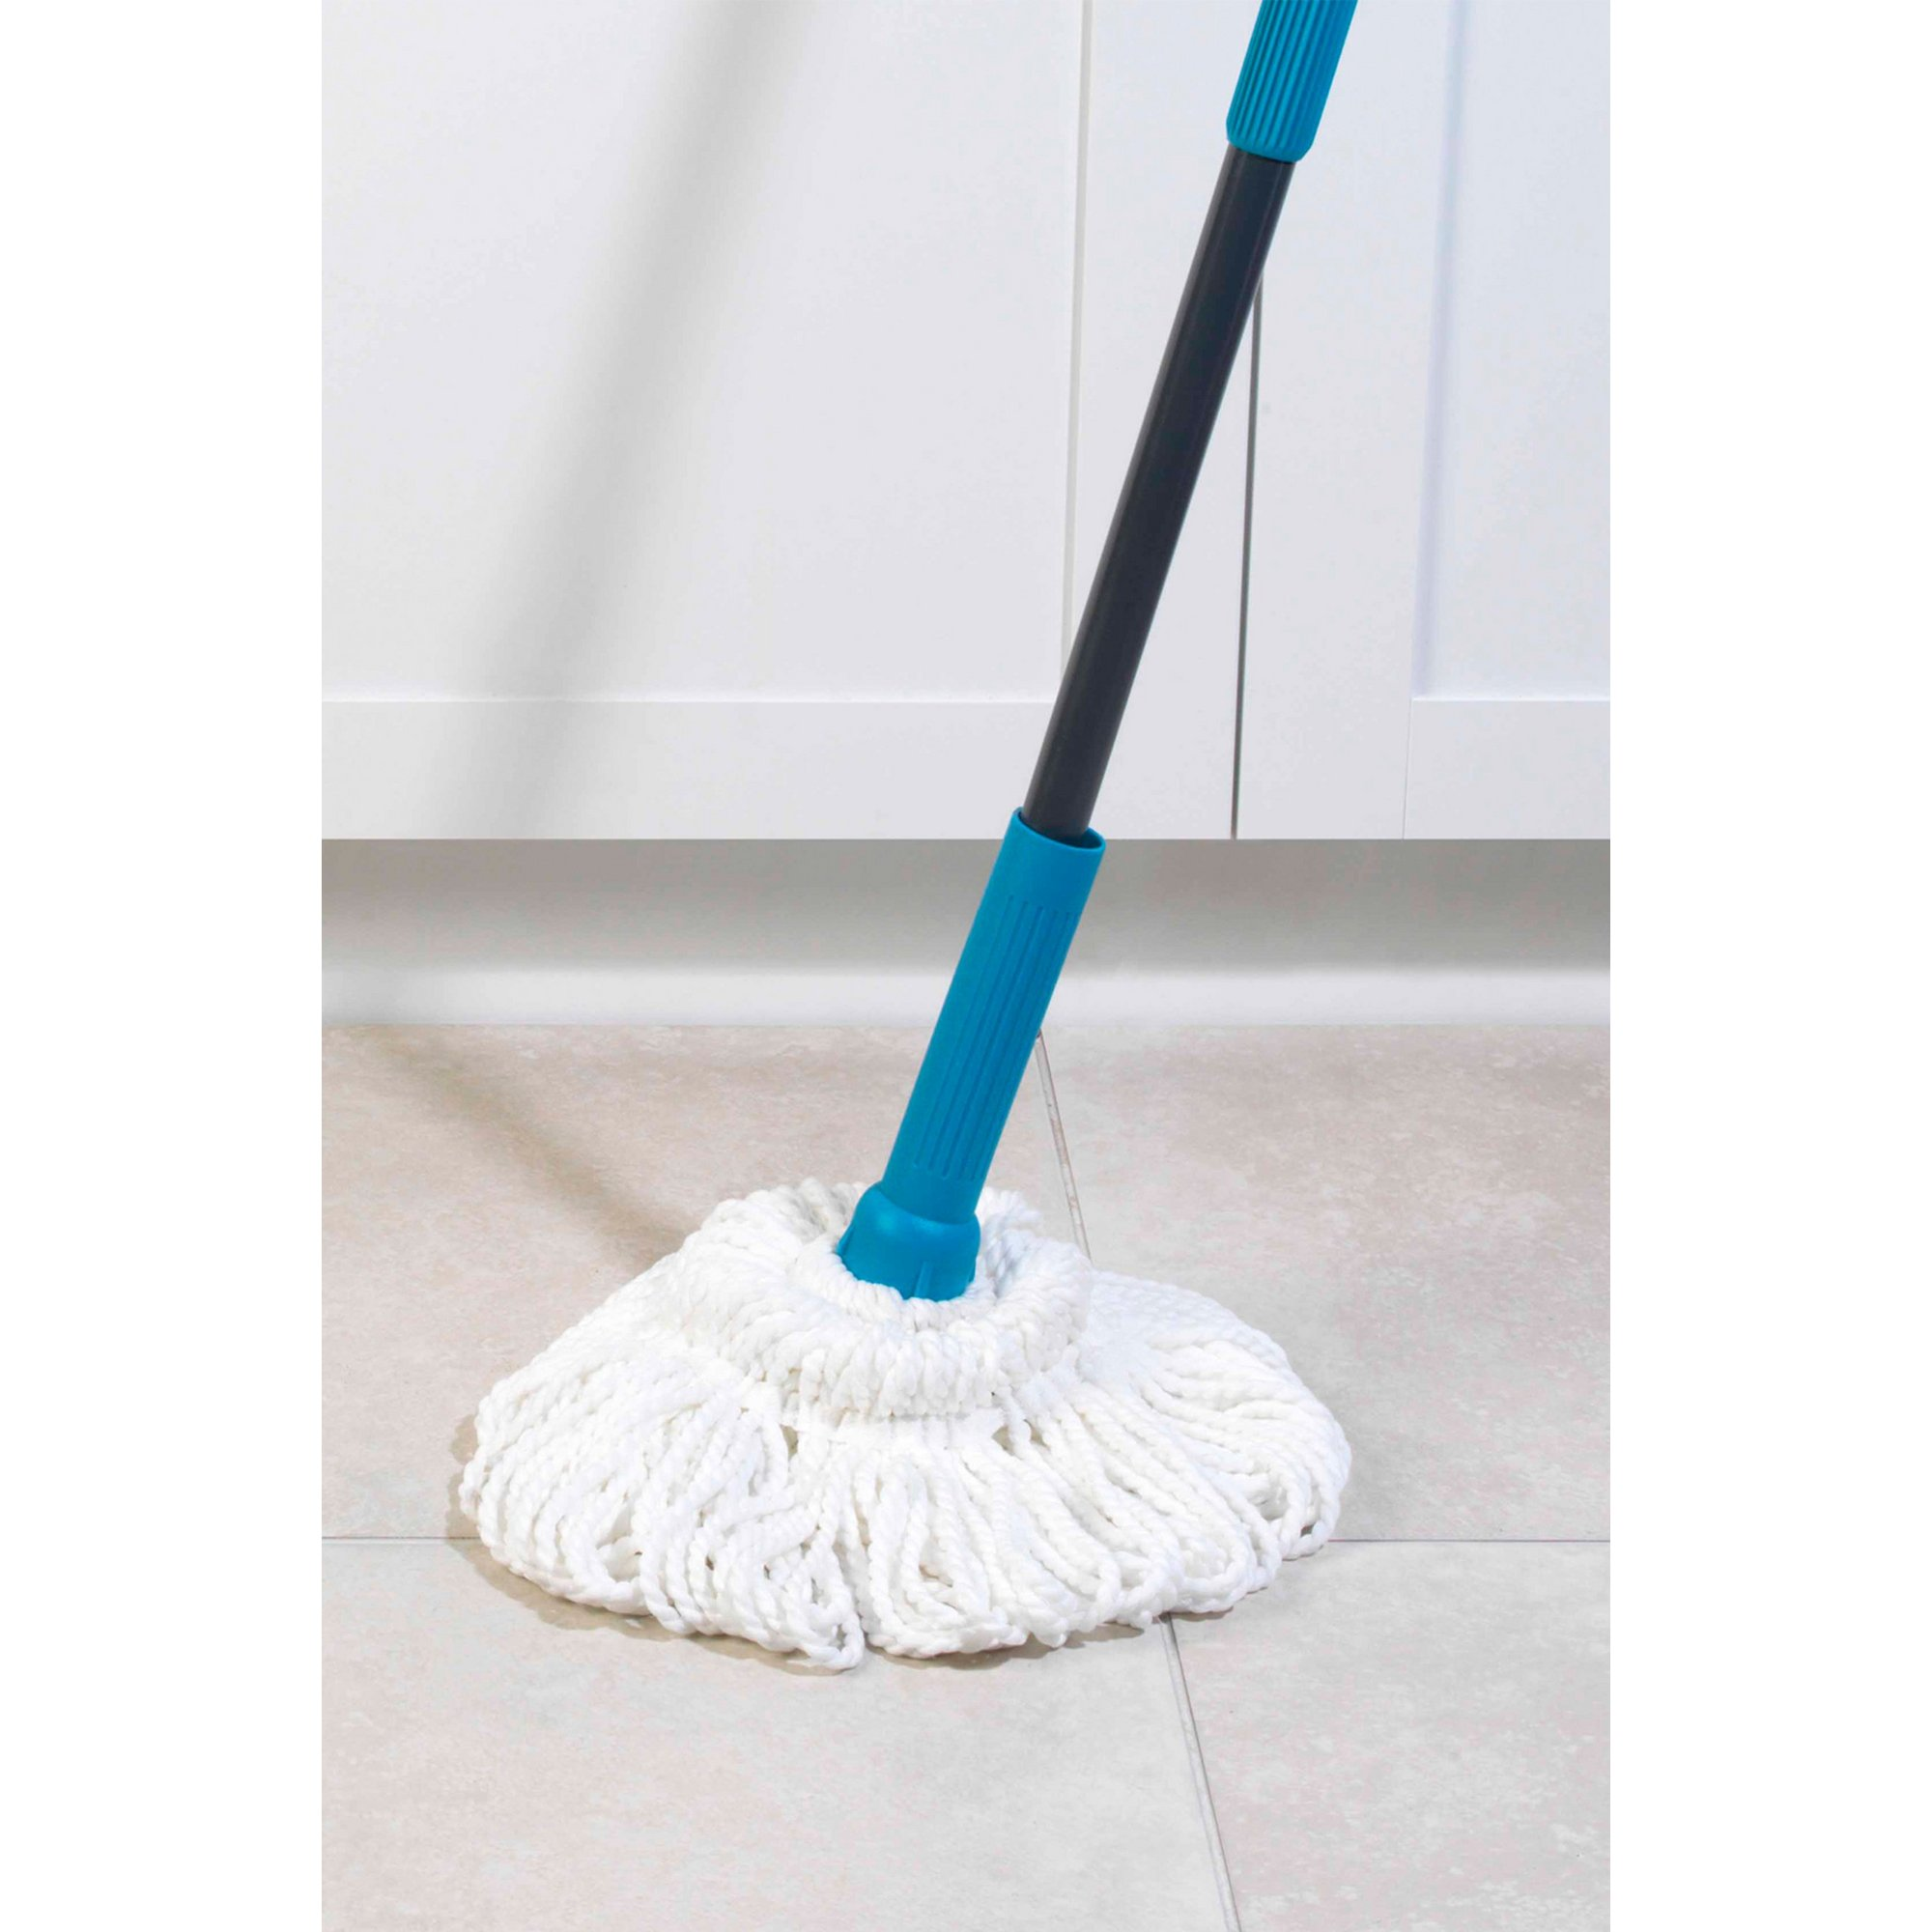 Image of Beldray Extendable Twist Mop with Anti-Bac Protection